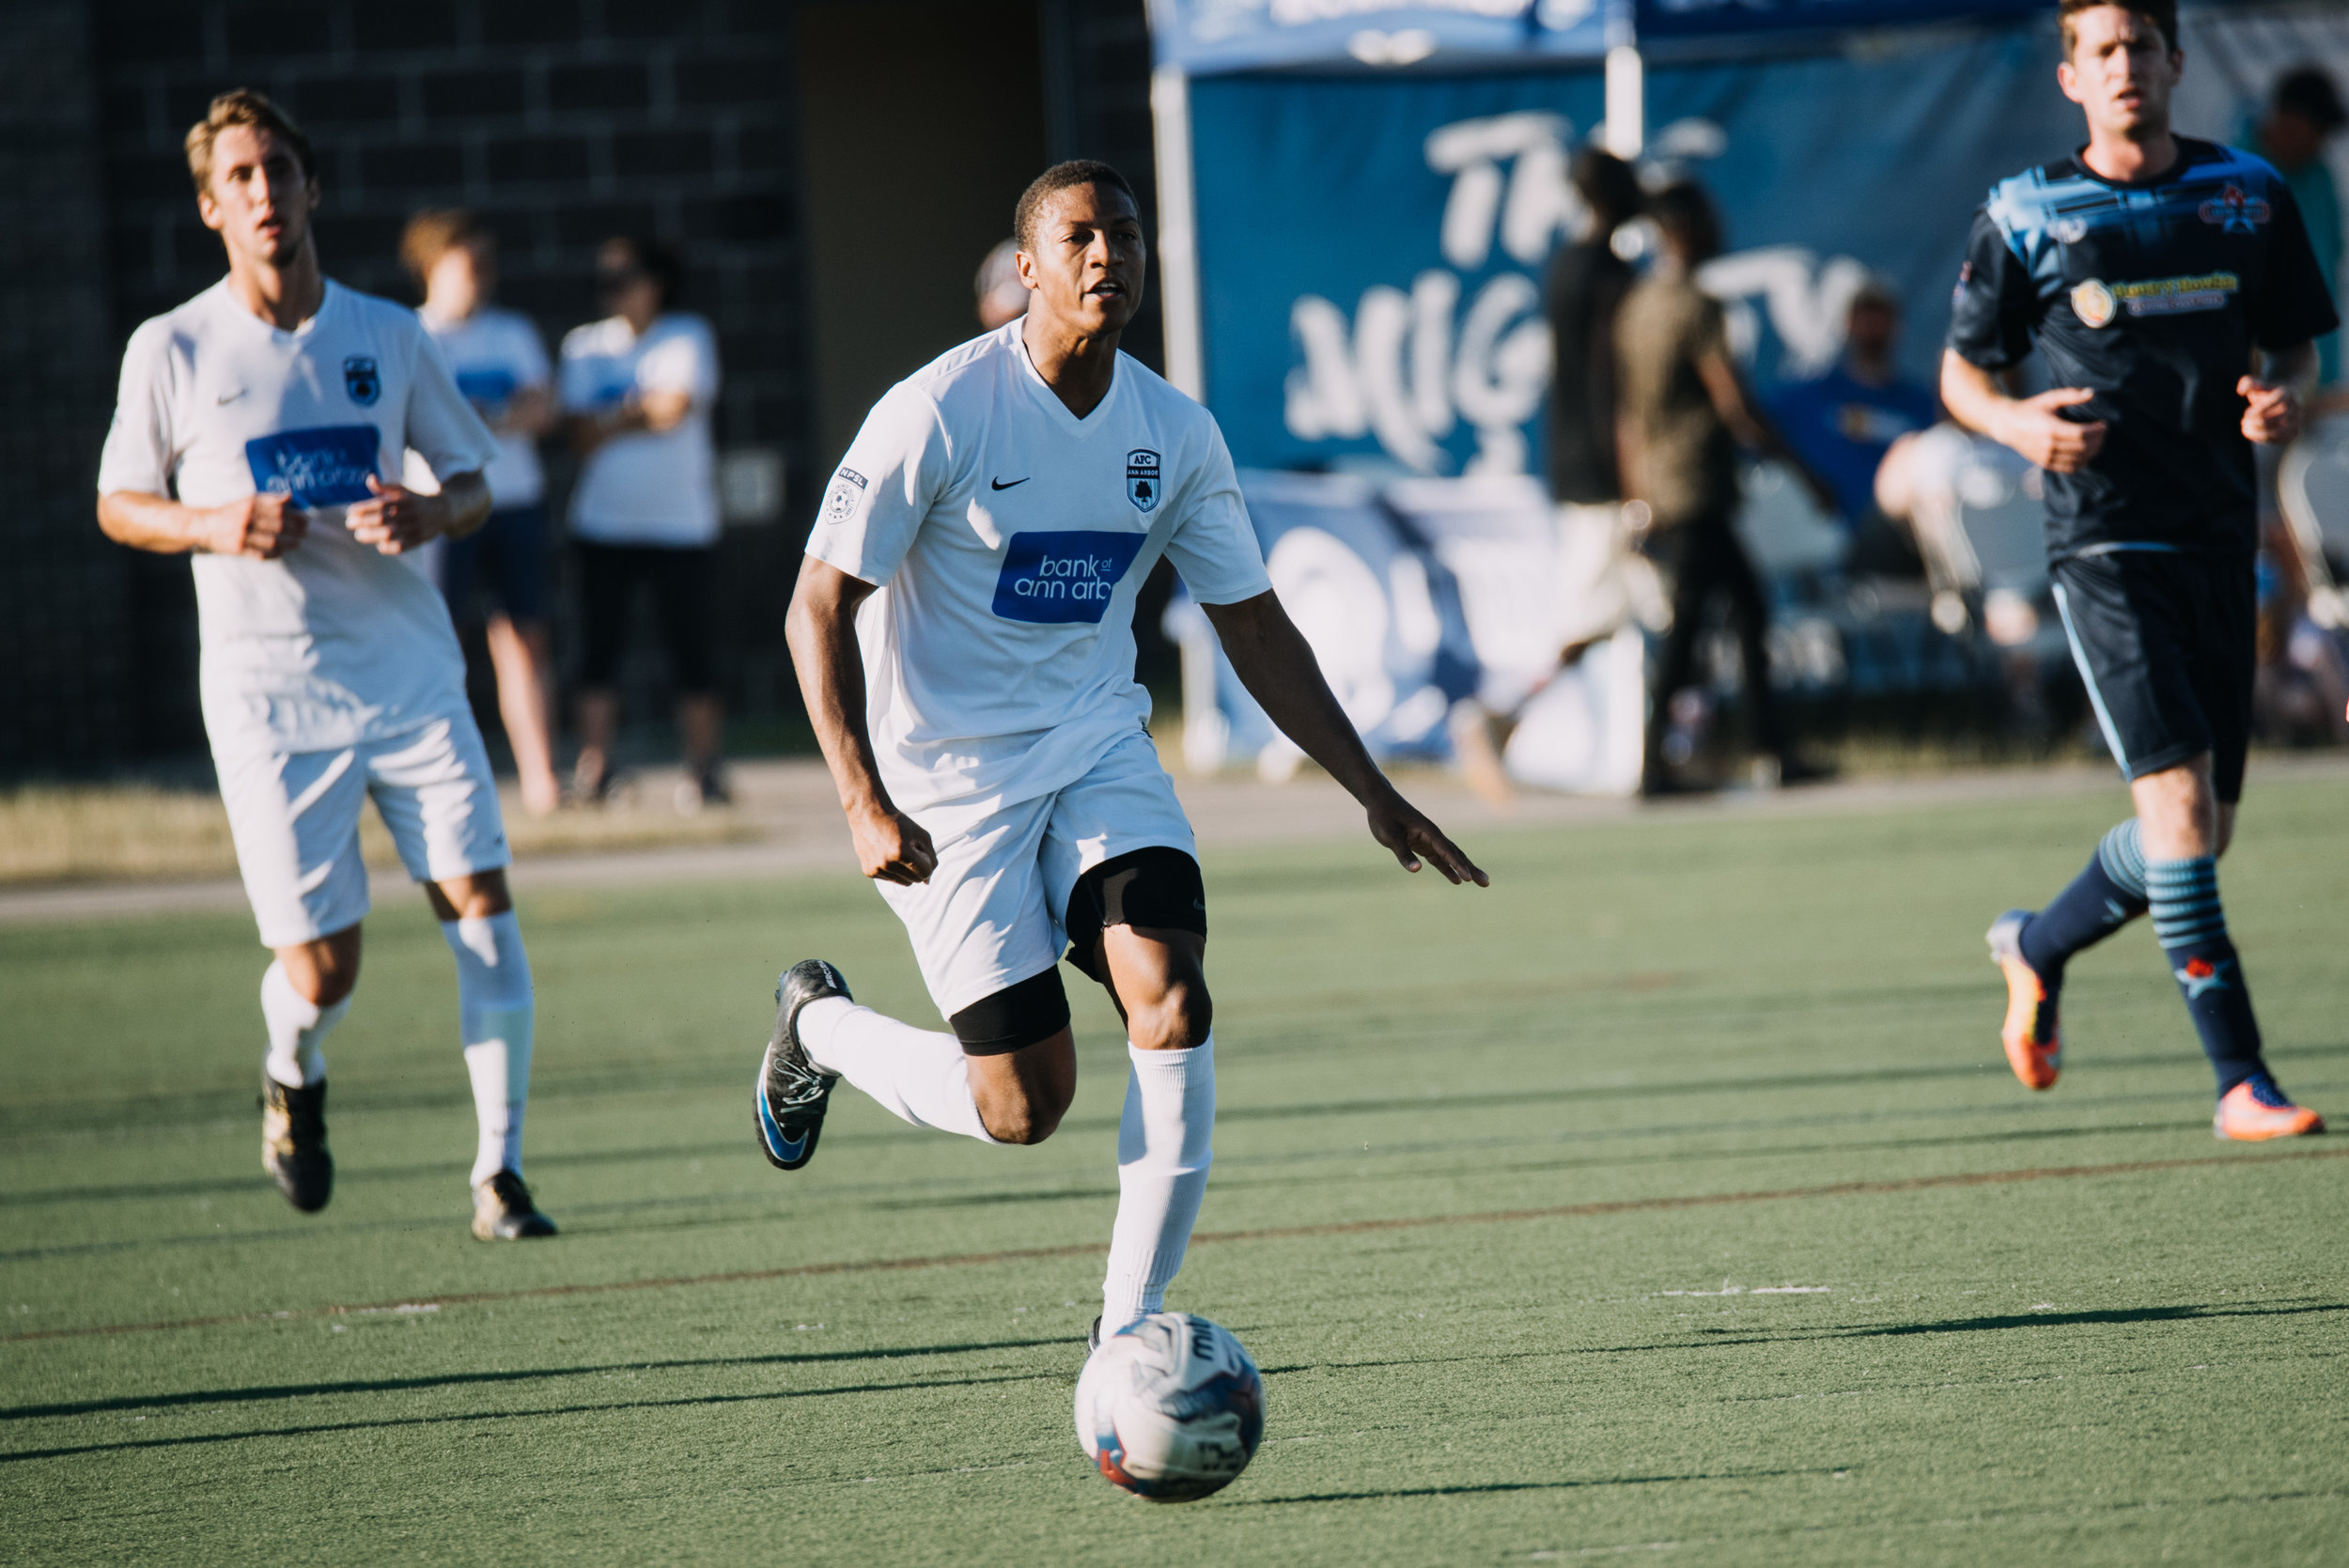 Key player for AFC Ann Arbor (NPSL) as Midwest Regional Champion Finalist